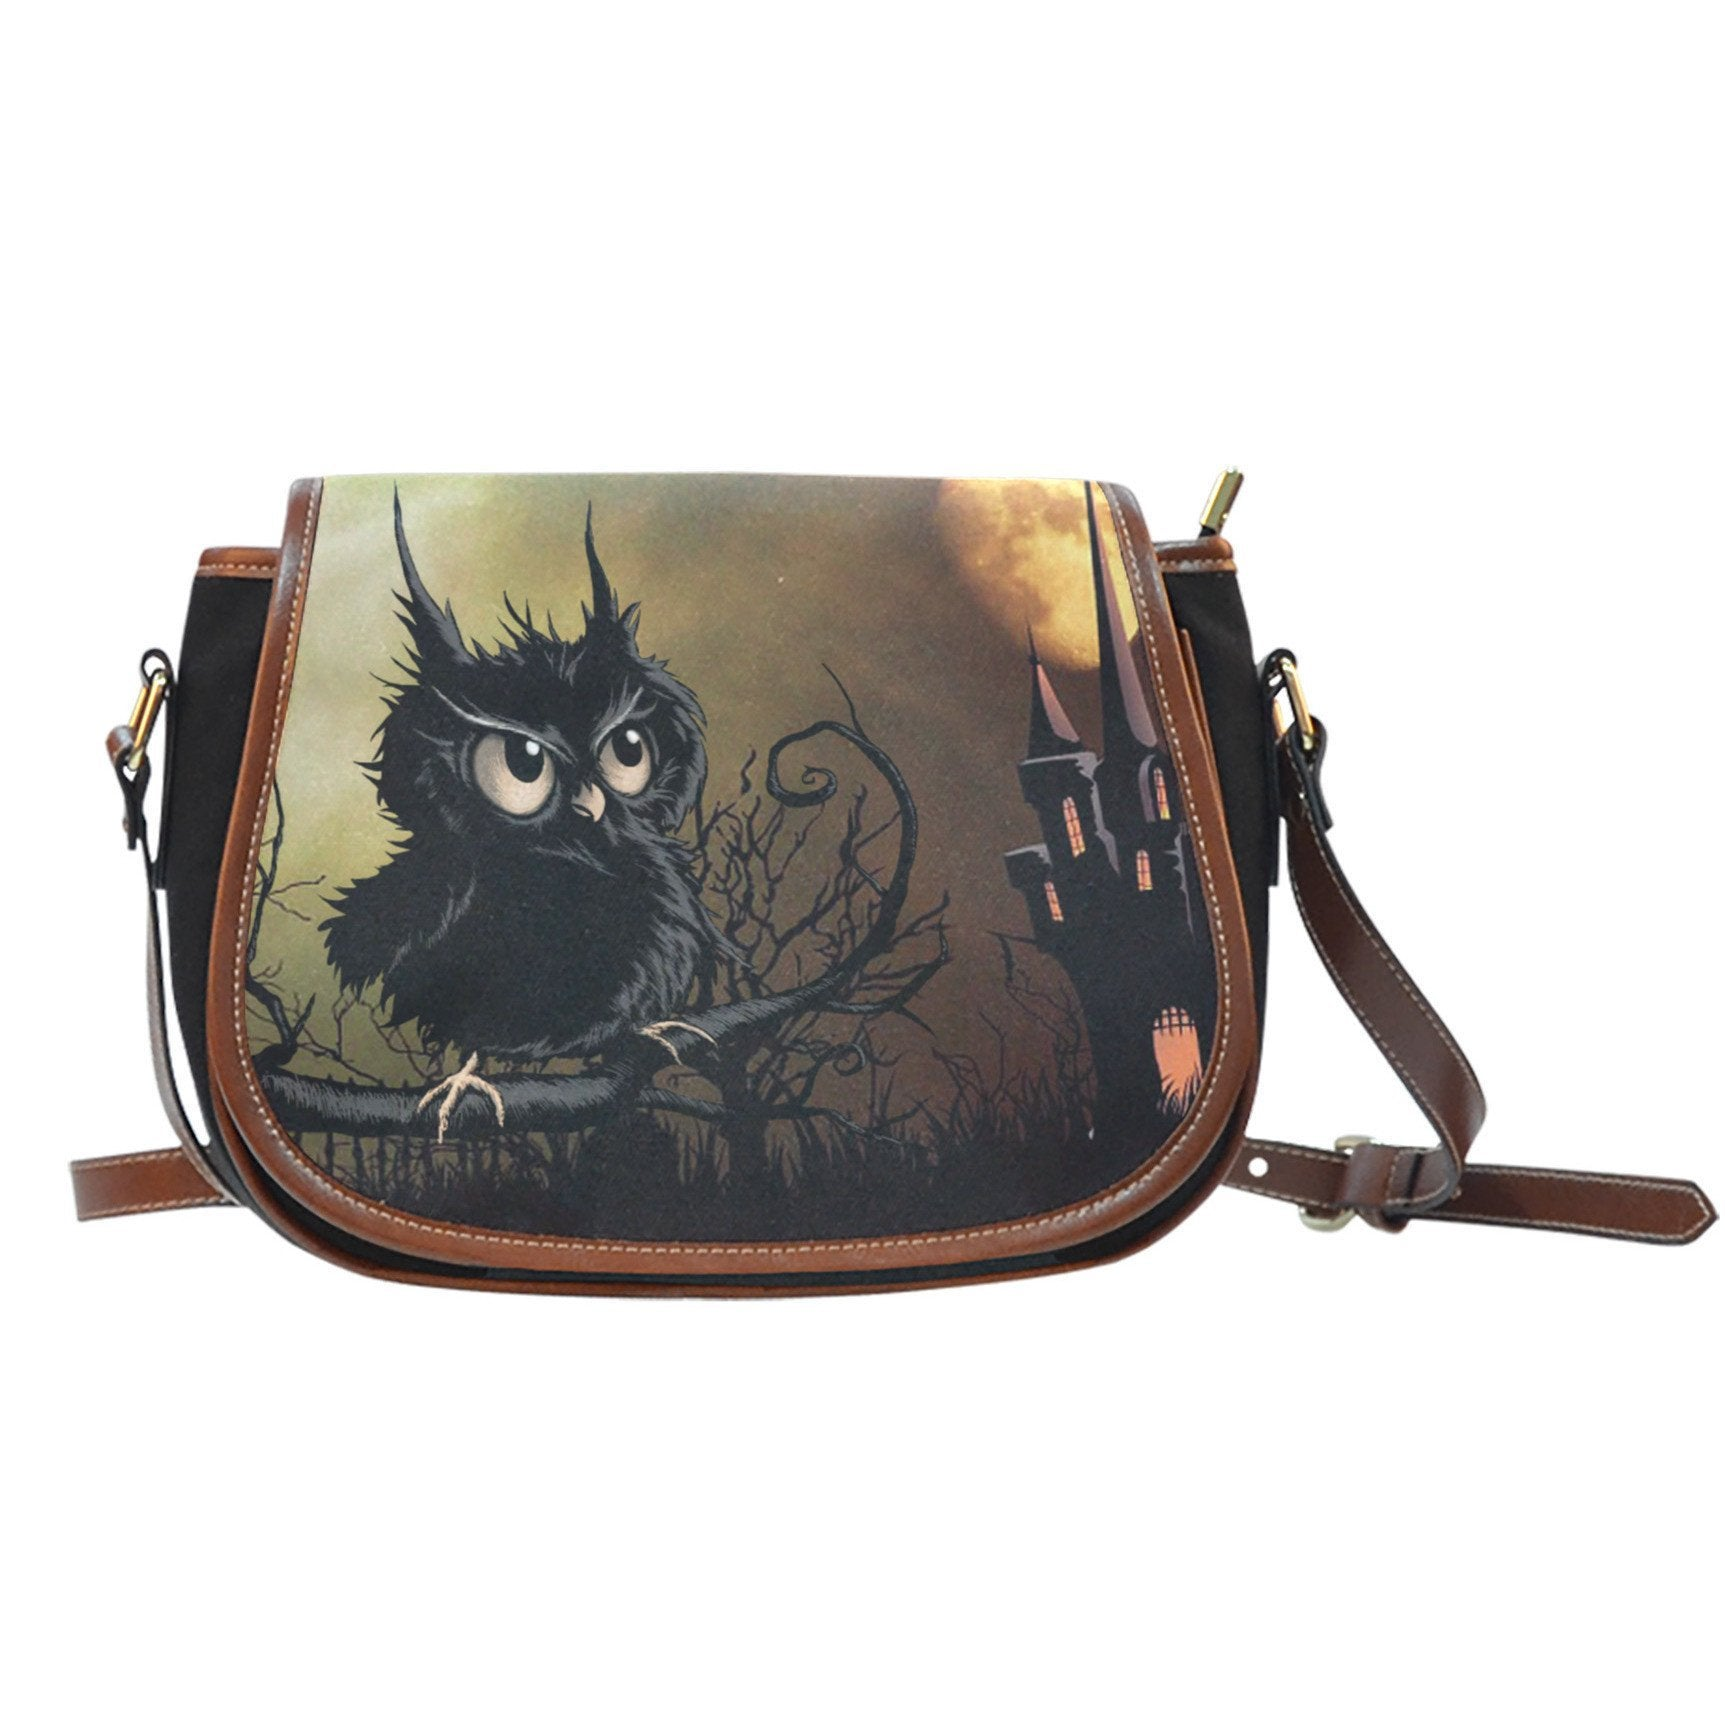 Buy NATIVE AMERICAN  OWL SADDLE BAGS - Familyloves hoodies t-shirt jacket mug cheapest free shipping 50% off